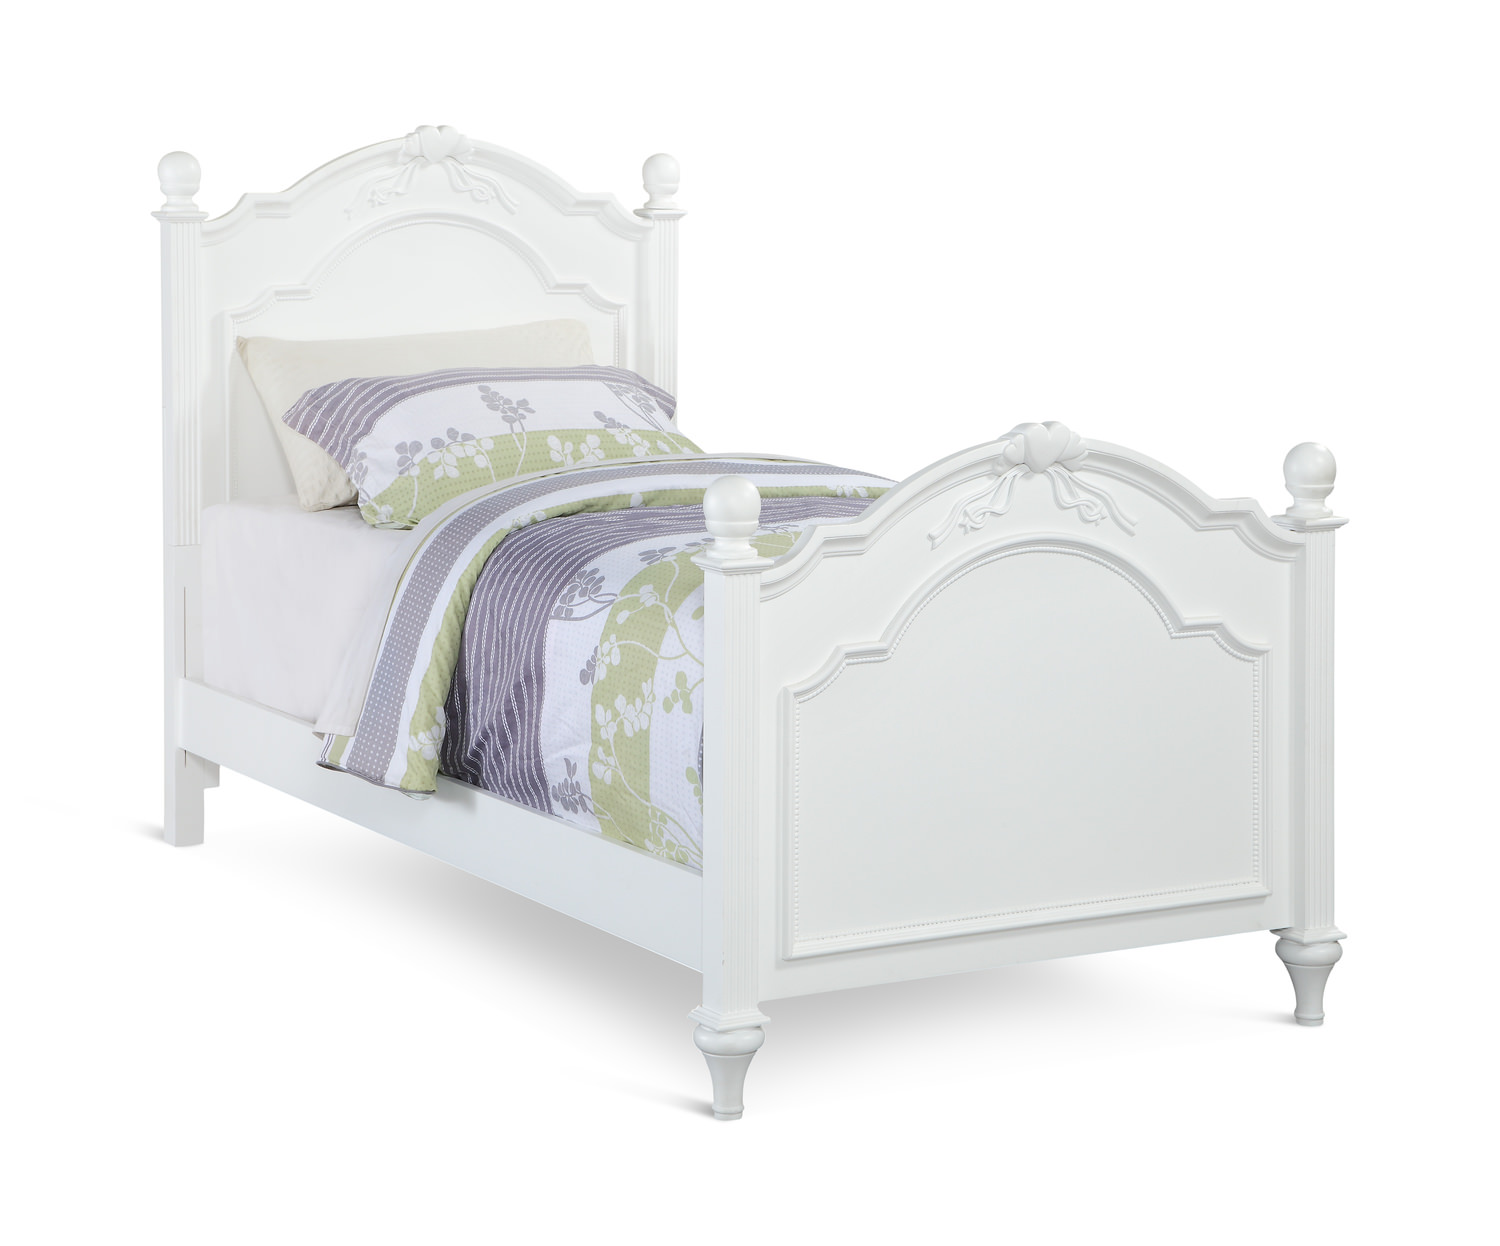 Chantilly Post Bed White By Thomas